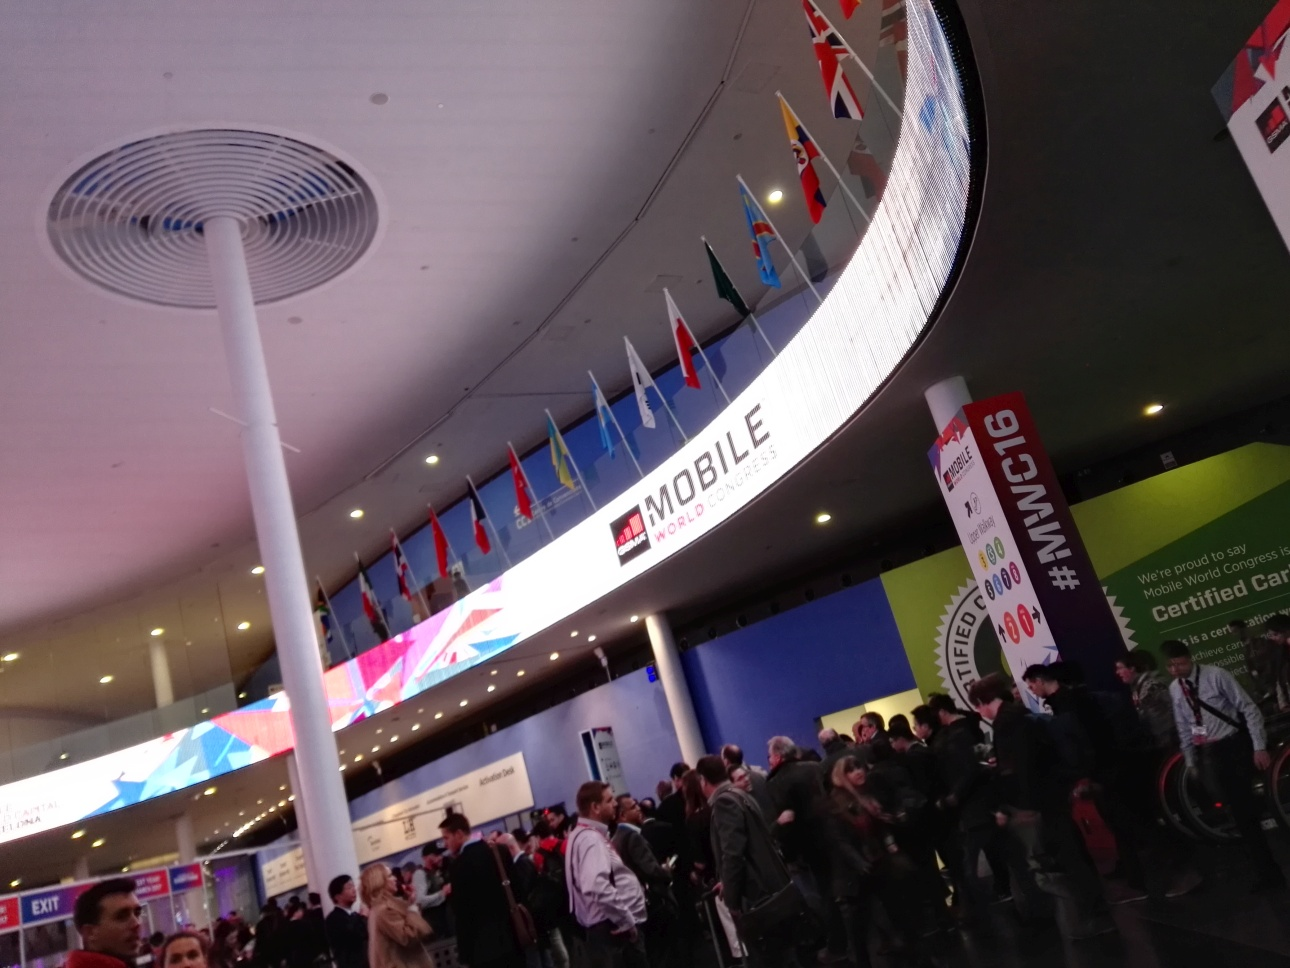 Mobile World Congress 2016 - 90sekund.pl